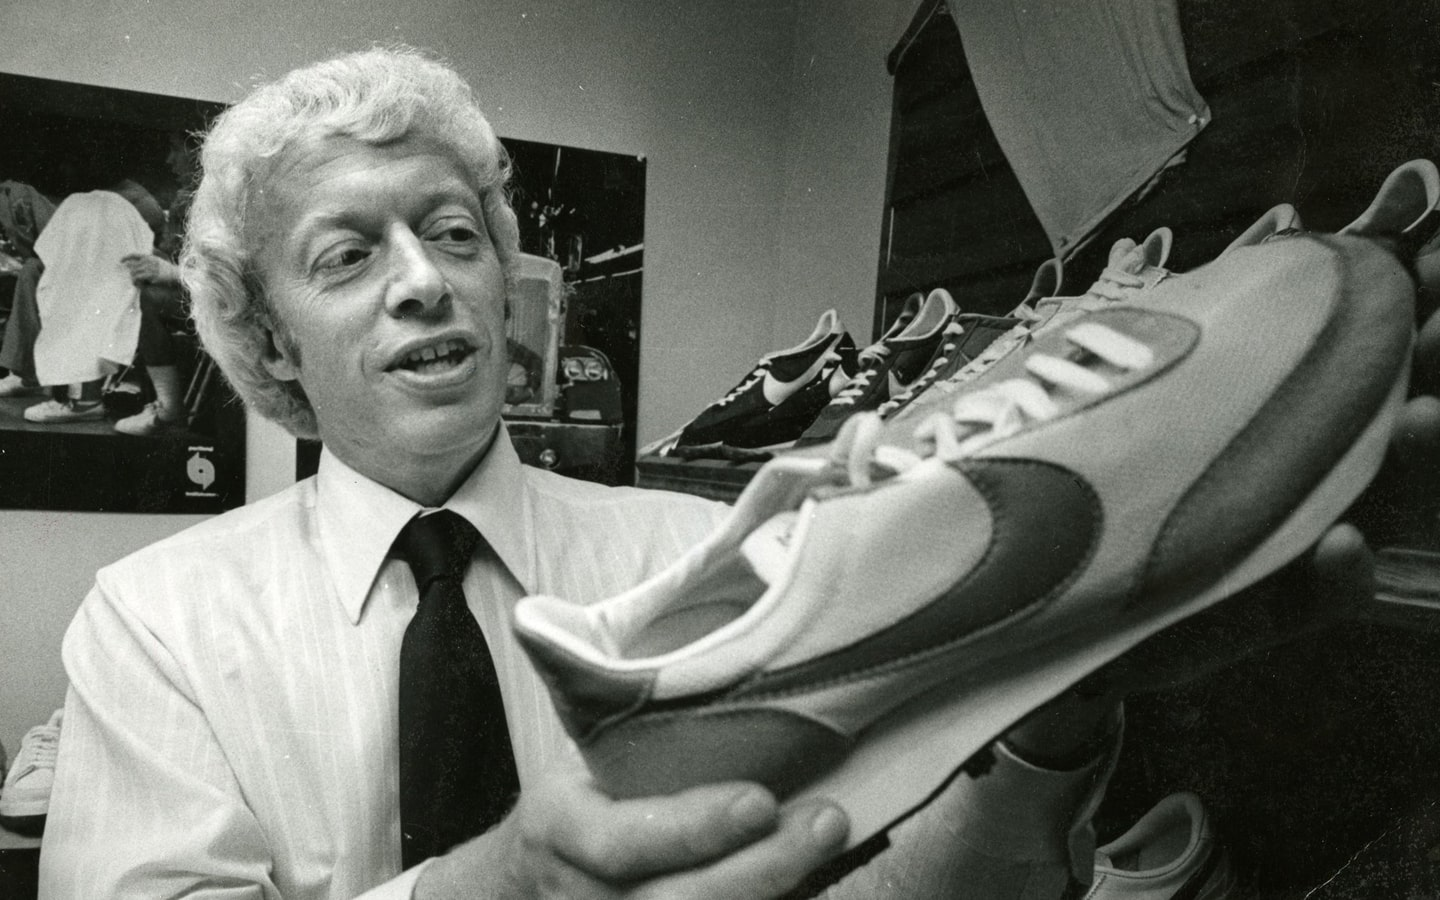 From the history of brands. NIKE, ADIDAS and PUMA. How did it all start?